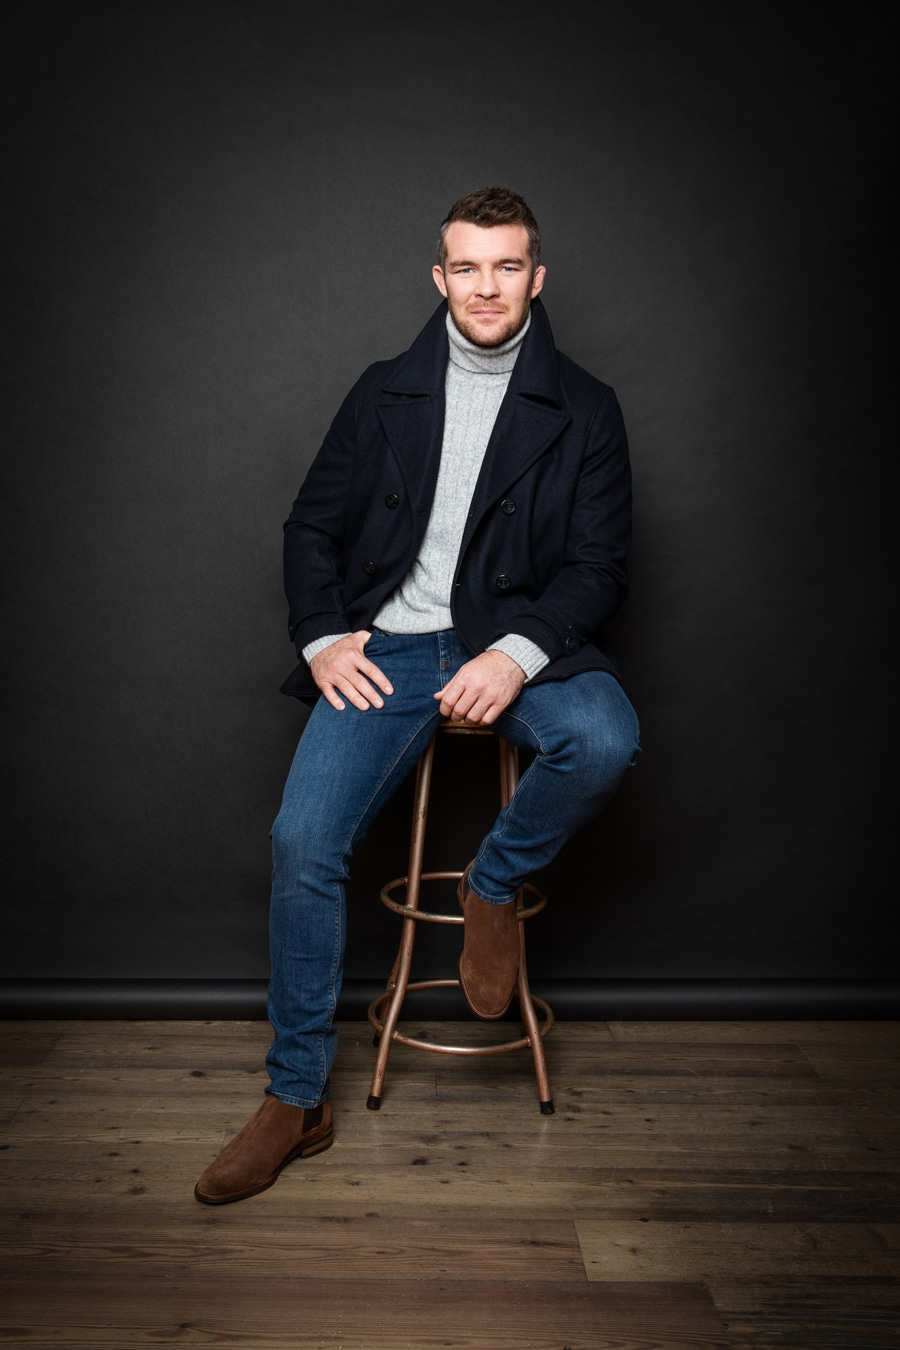 Irish Photographer Barry McCall shoots Munster Rugby Star Peter O'Mahony for Marks and Spencer